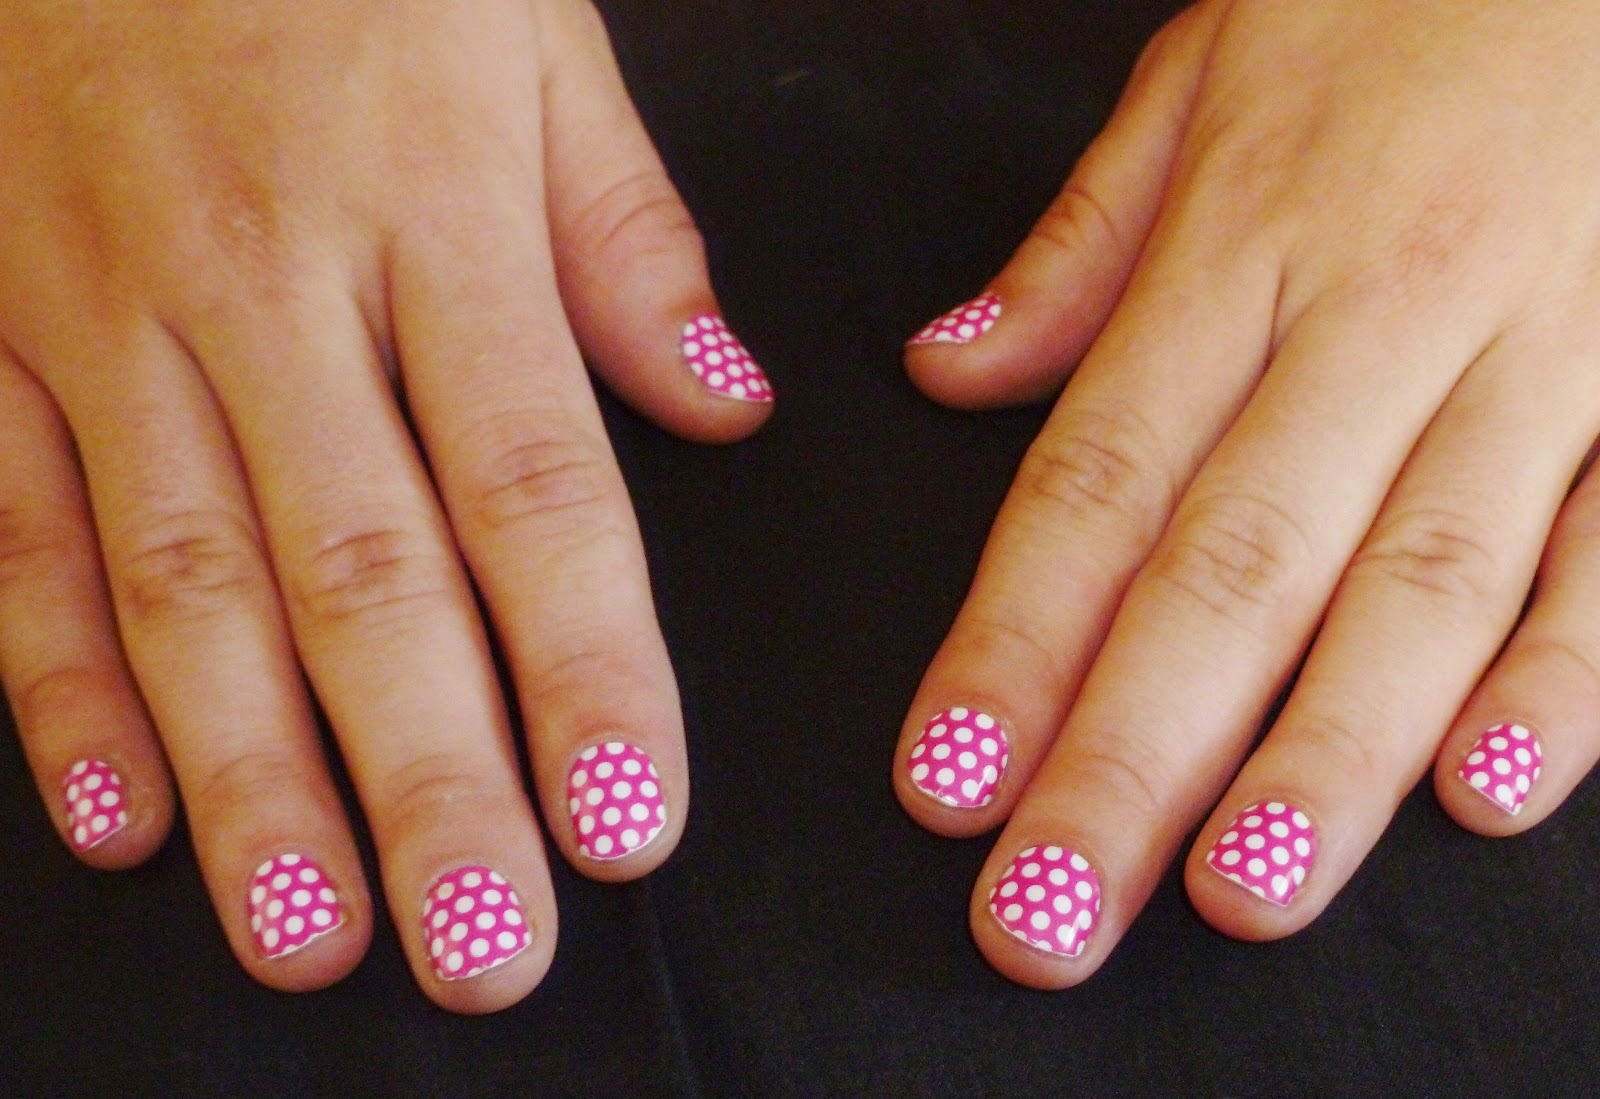 Jamberry Nails #Giveaway (Ends 8/14) - momma in flip flops